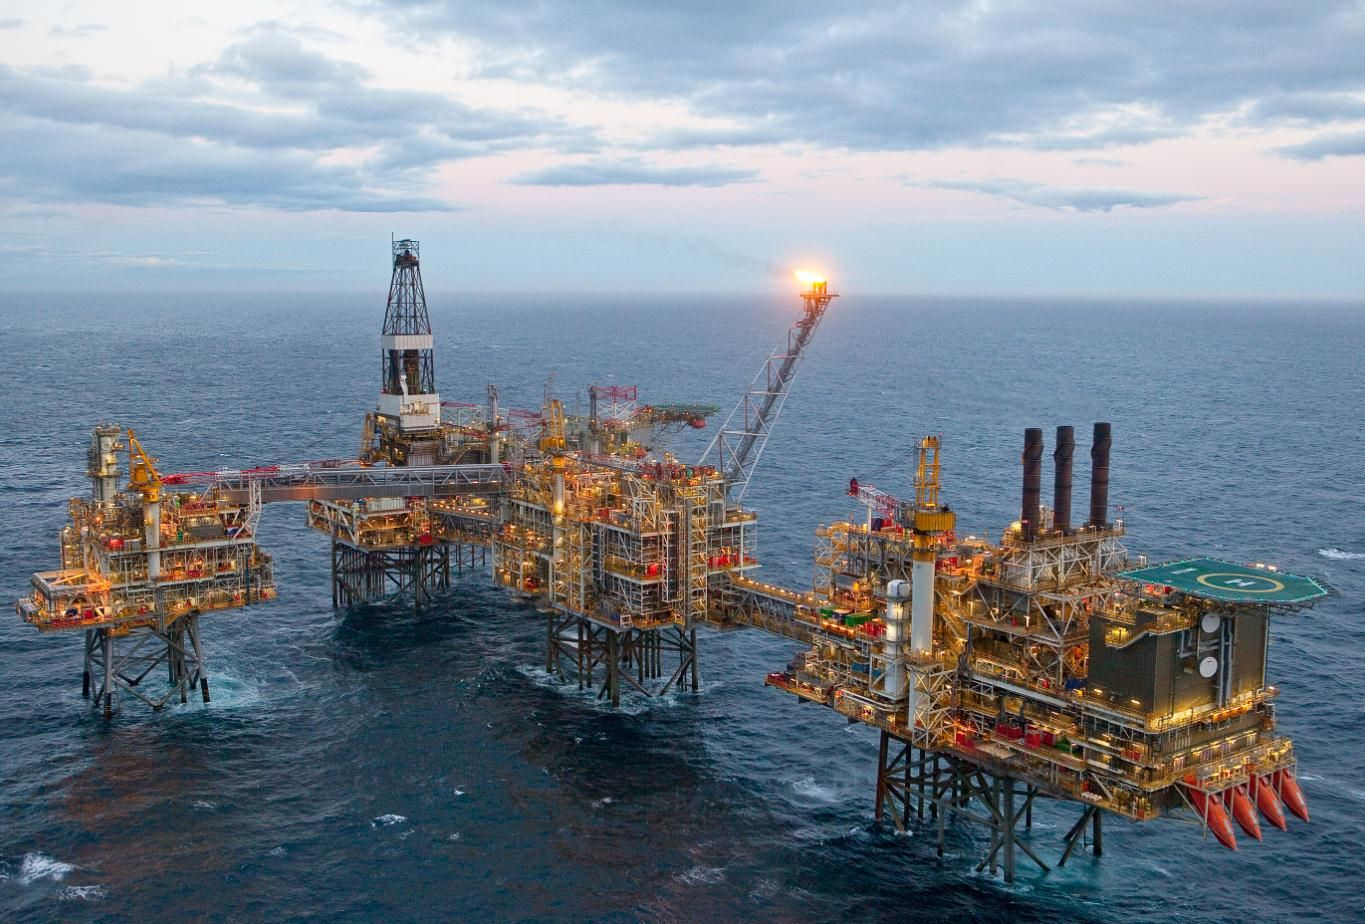 Nexen Extends Wood Group Psn North Sea Contract Oil Platform Oil Rig Oil Rig Jobs